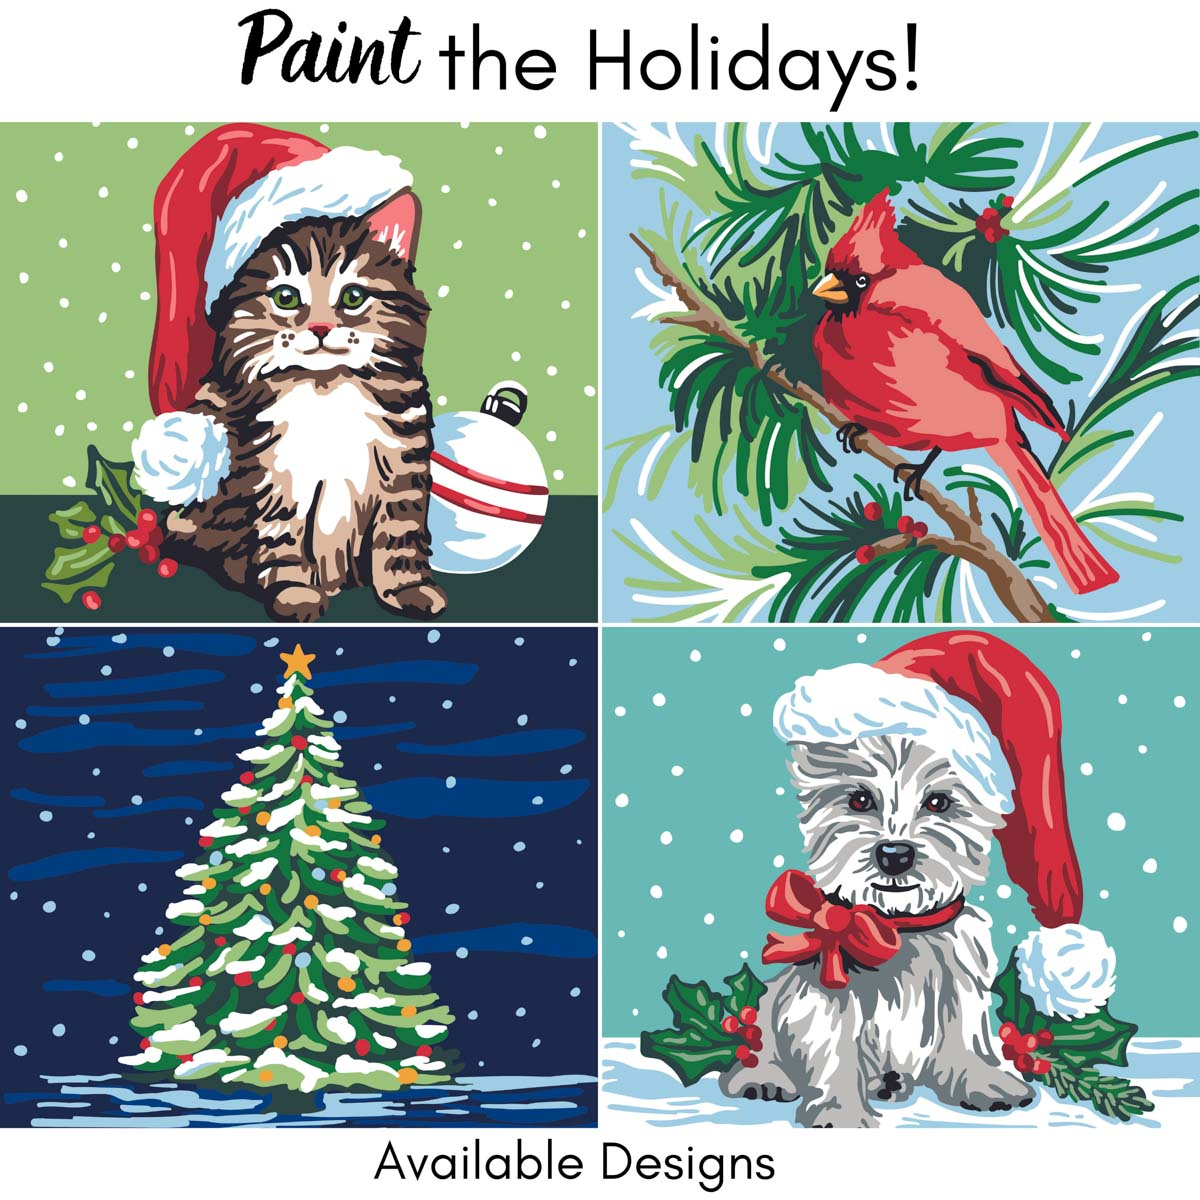 Plaid ® Let's Paint™ Modern Paint-by-Number - Christmas Tree - 17921